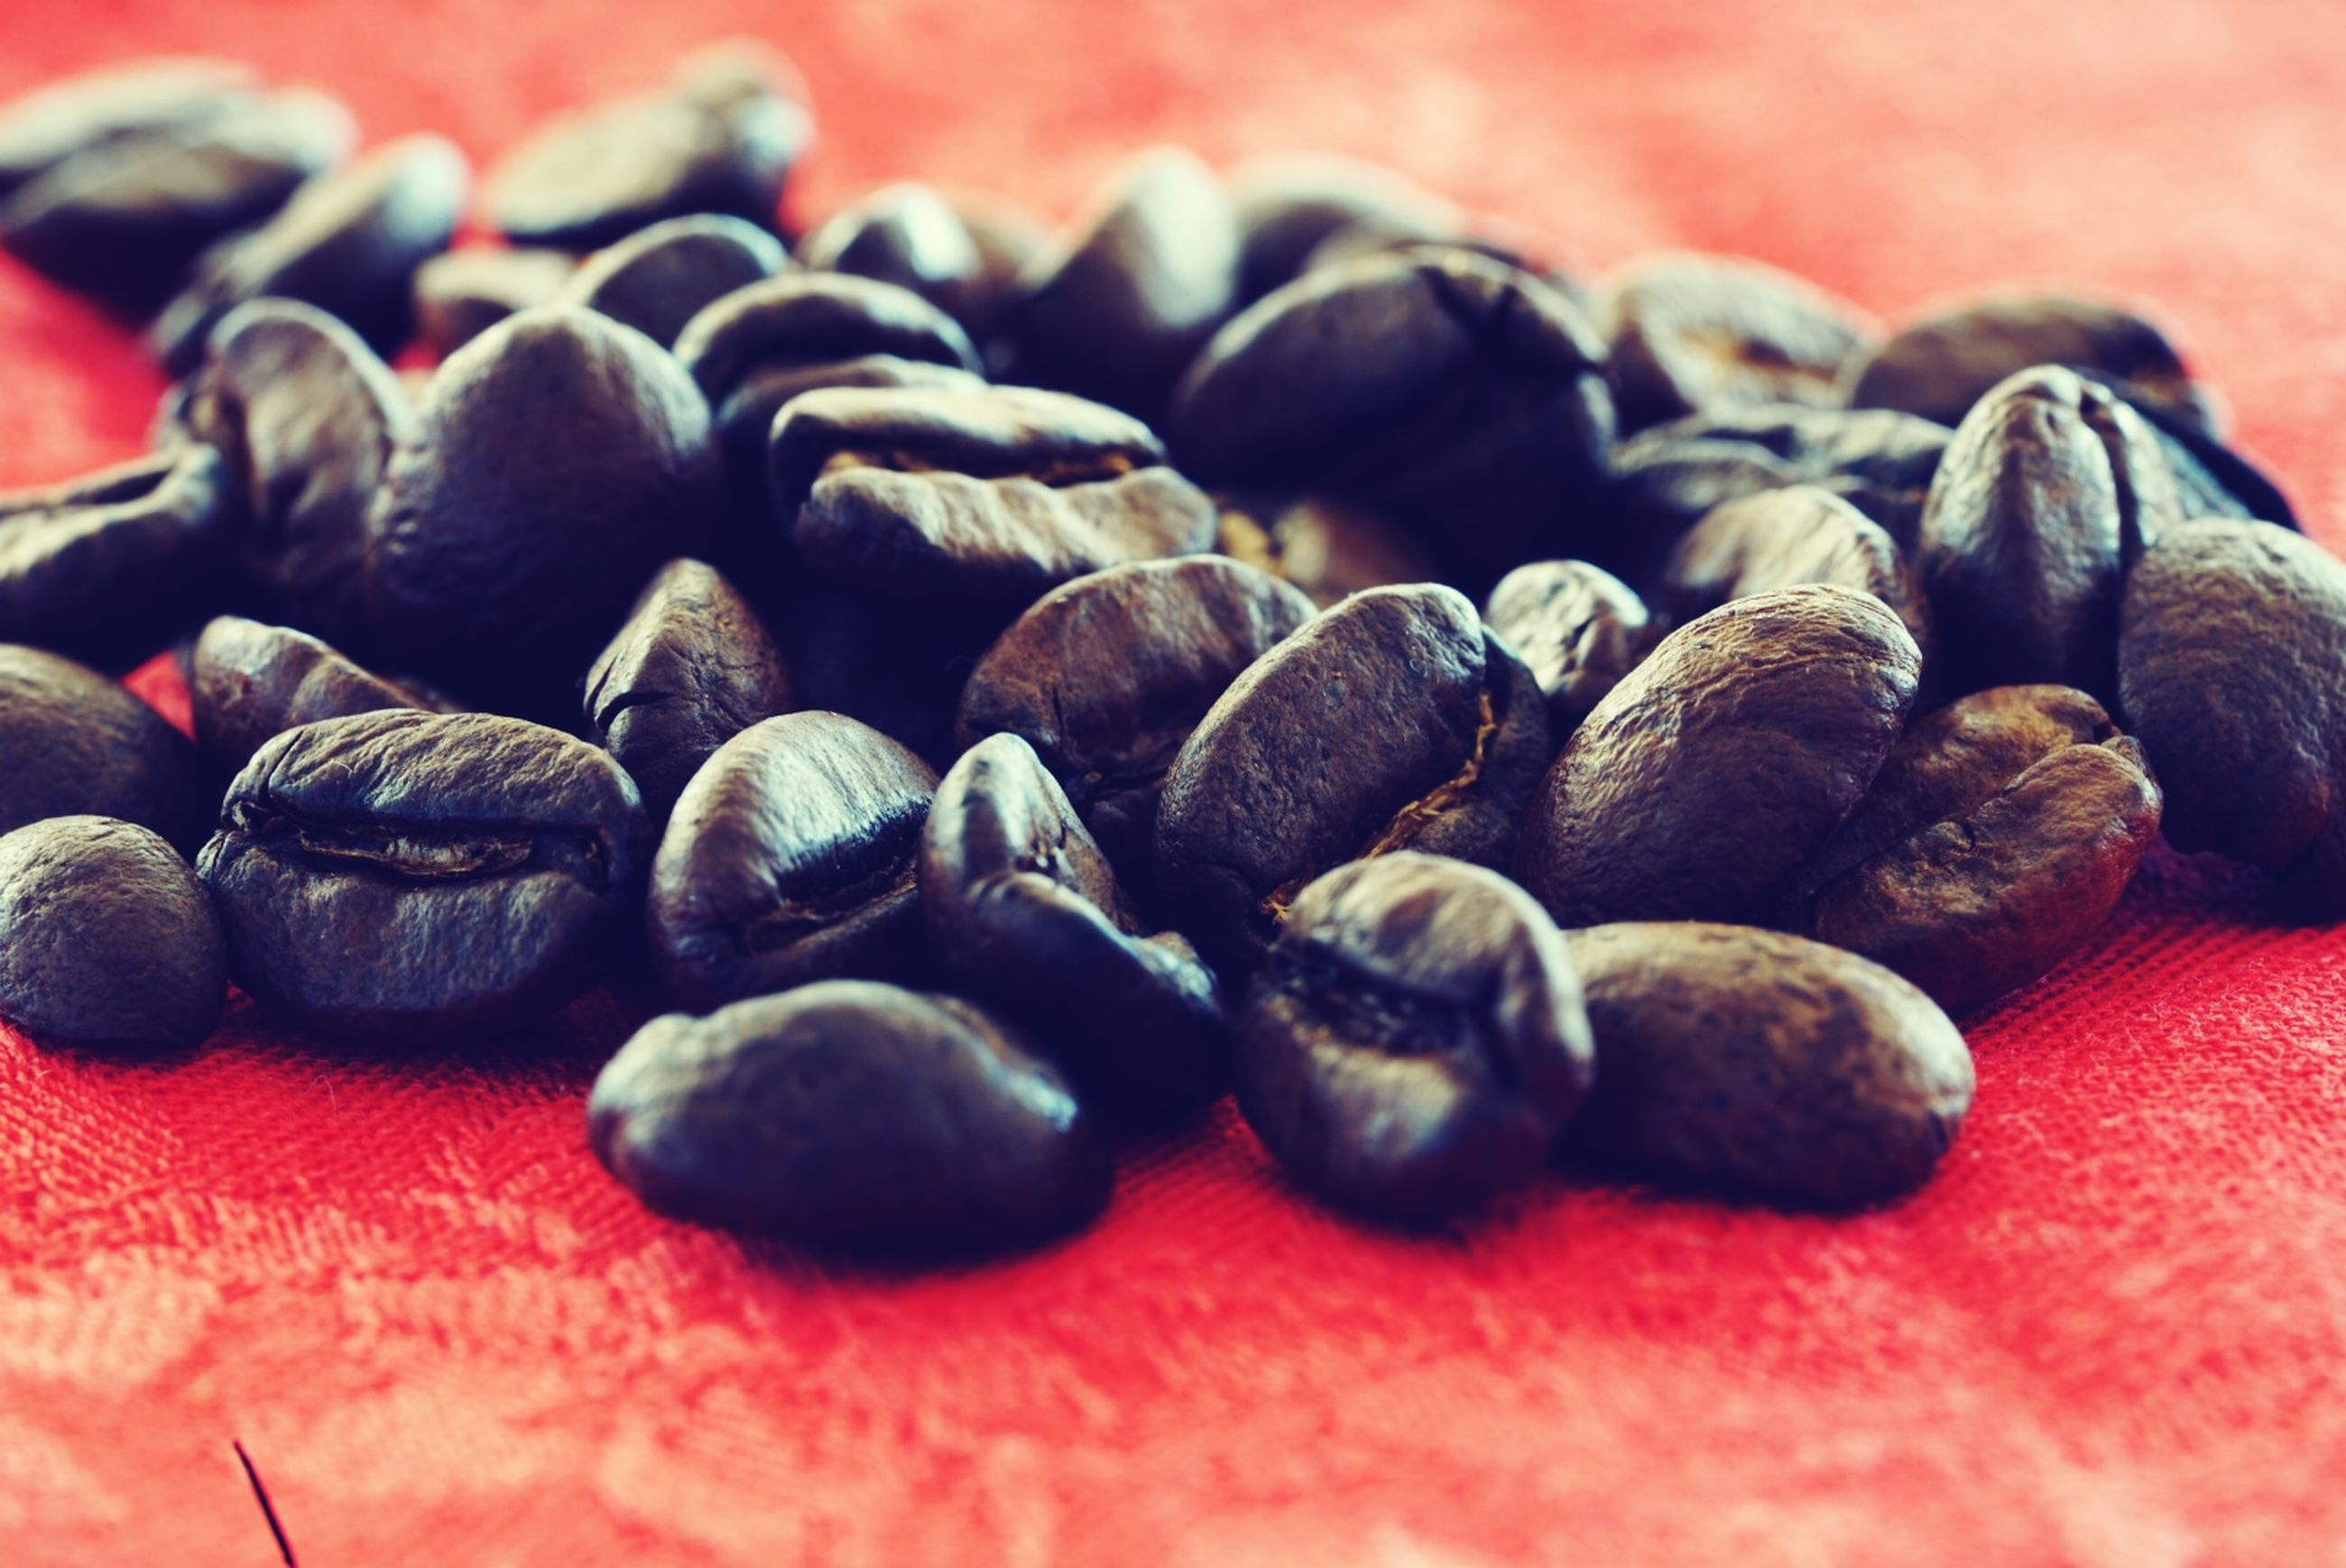 food and drink, food, close-up, still life, freshness, large group of objects, no people, selective focus, indoors, healthy eating, wellbeing, red, focus on foreground, table, roasted coffee bean, coffee - drink, abundance, brown, group, coffee, caffeine